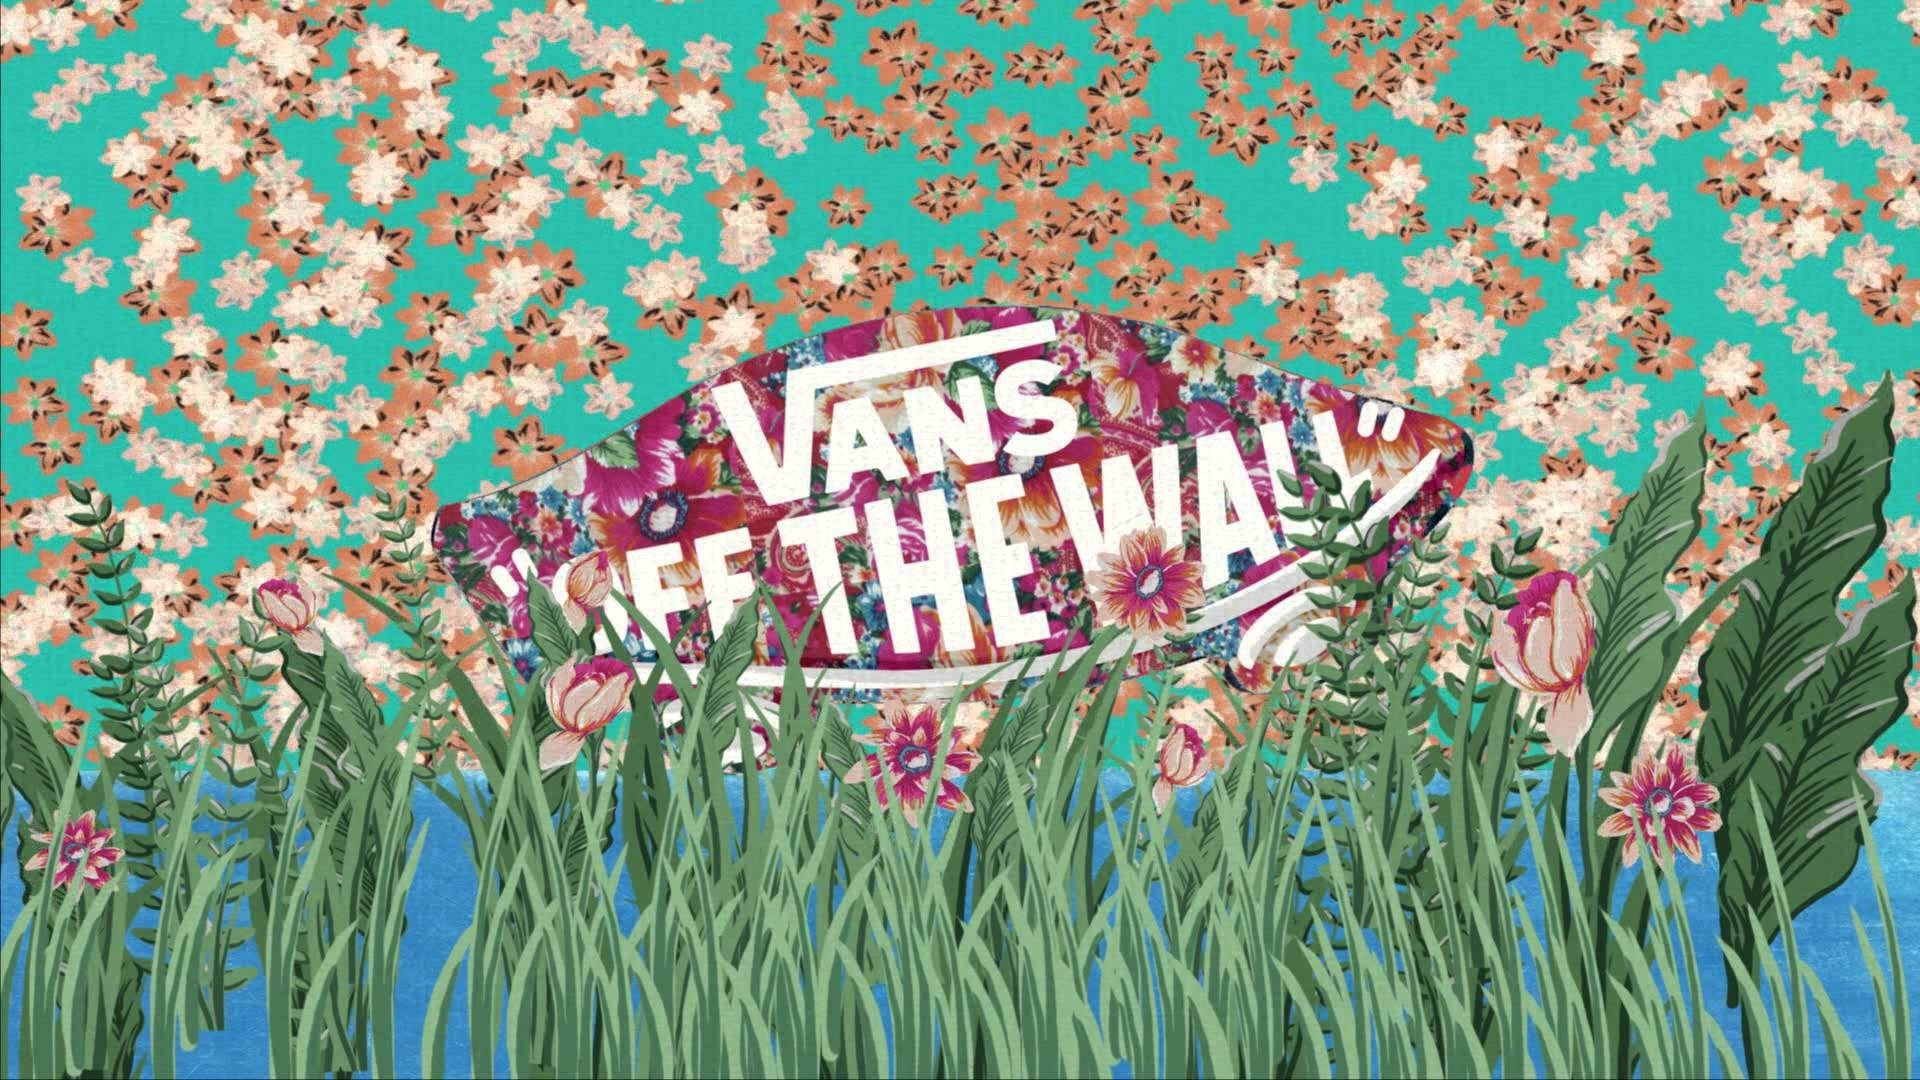 1920x1080 Images Download Vans Logo Wallpapers Hd 49 1242x2208 Cool Background Wallpaper